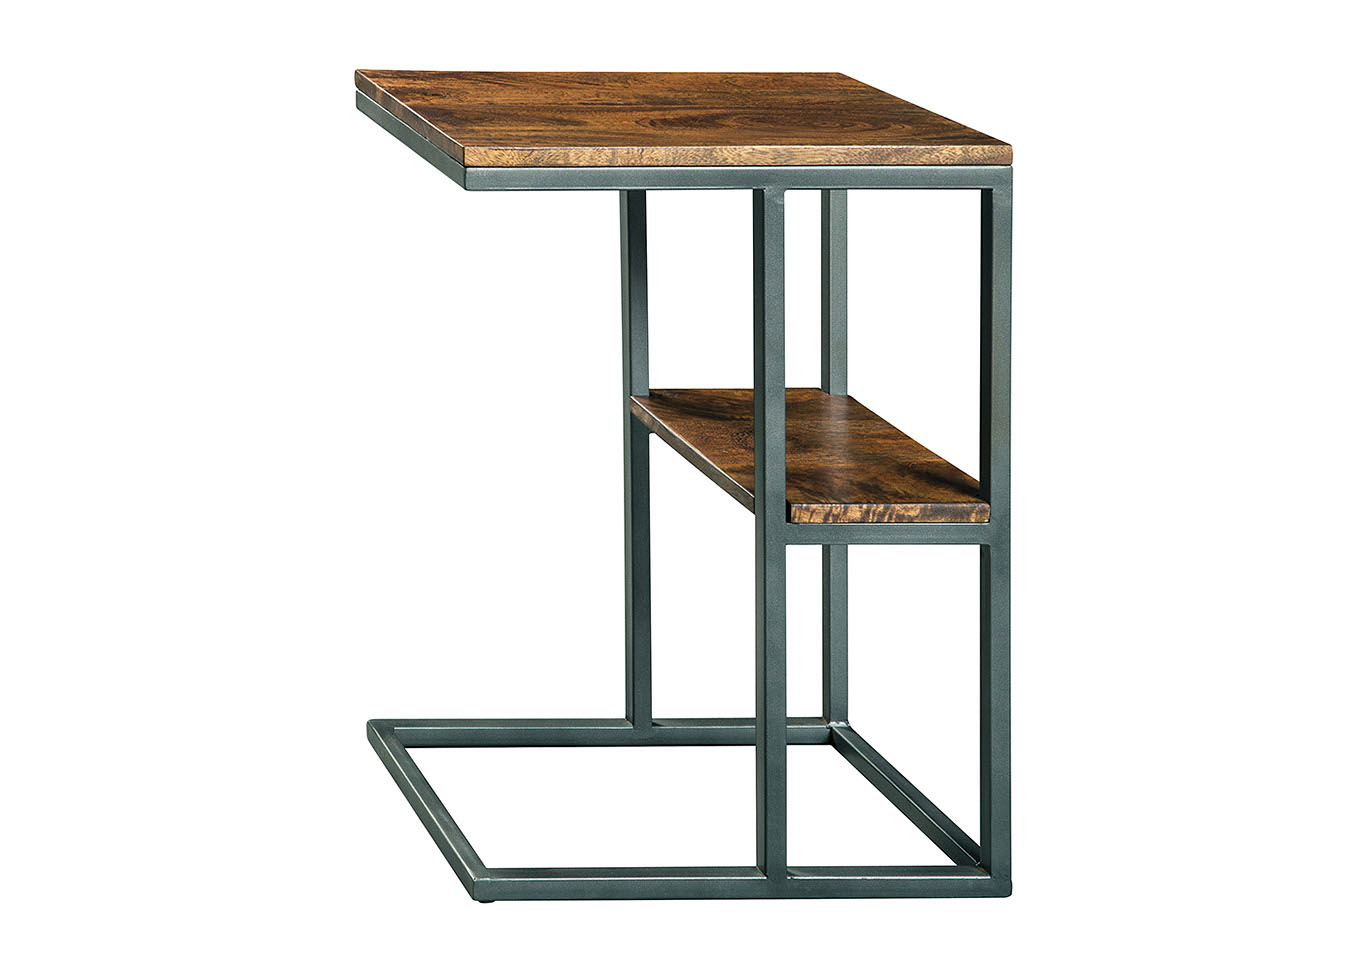 langlois furniture muskegon forestmin natural black accent table signature design ashley nautical style end tables mosaic tops outdoor fall tablecloth diy base stool dining and